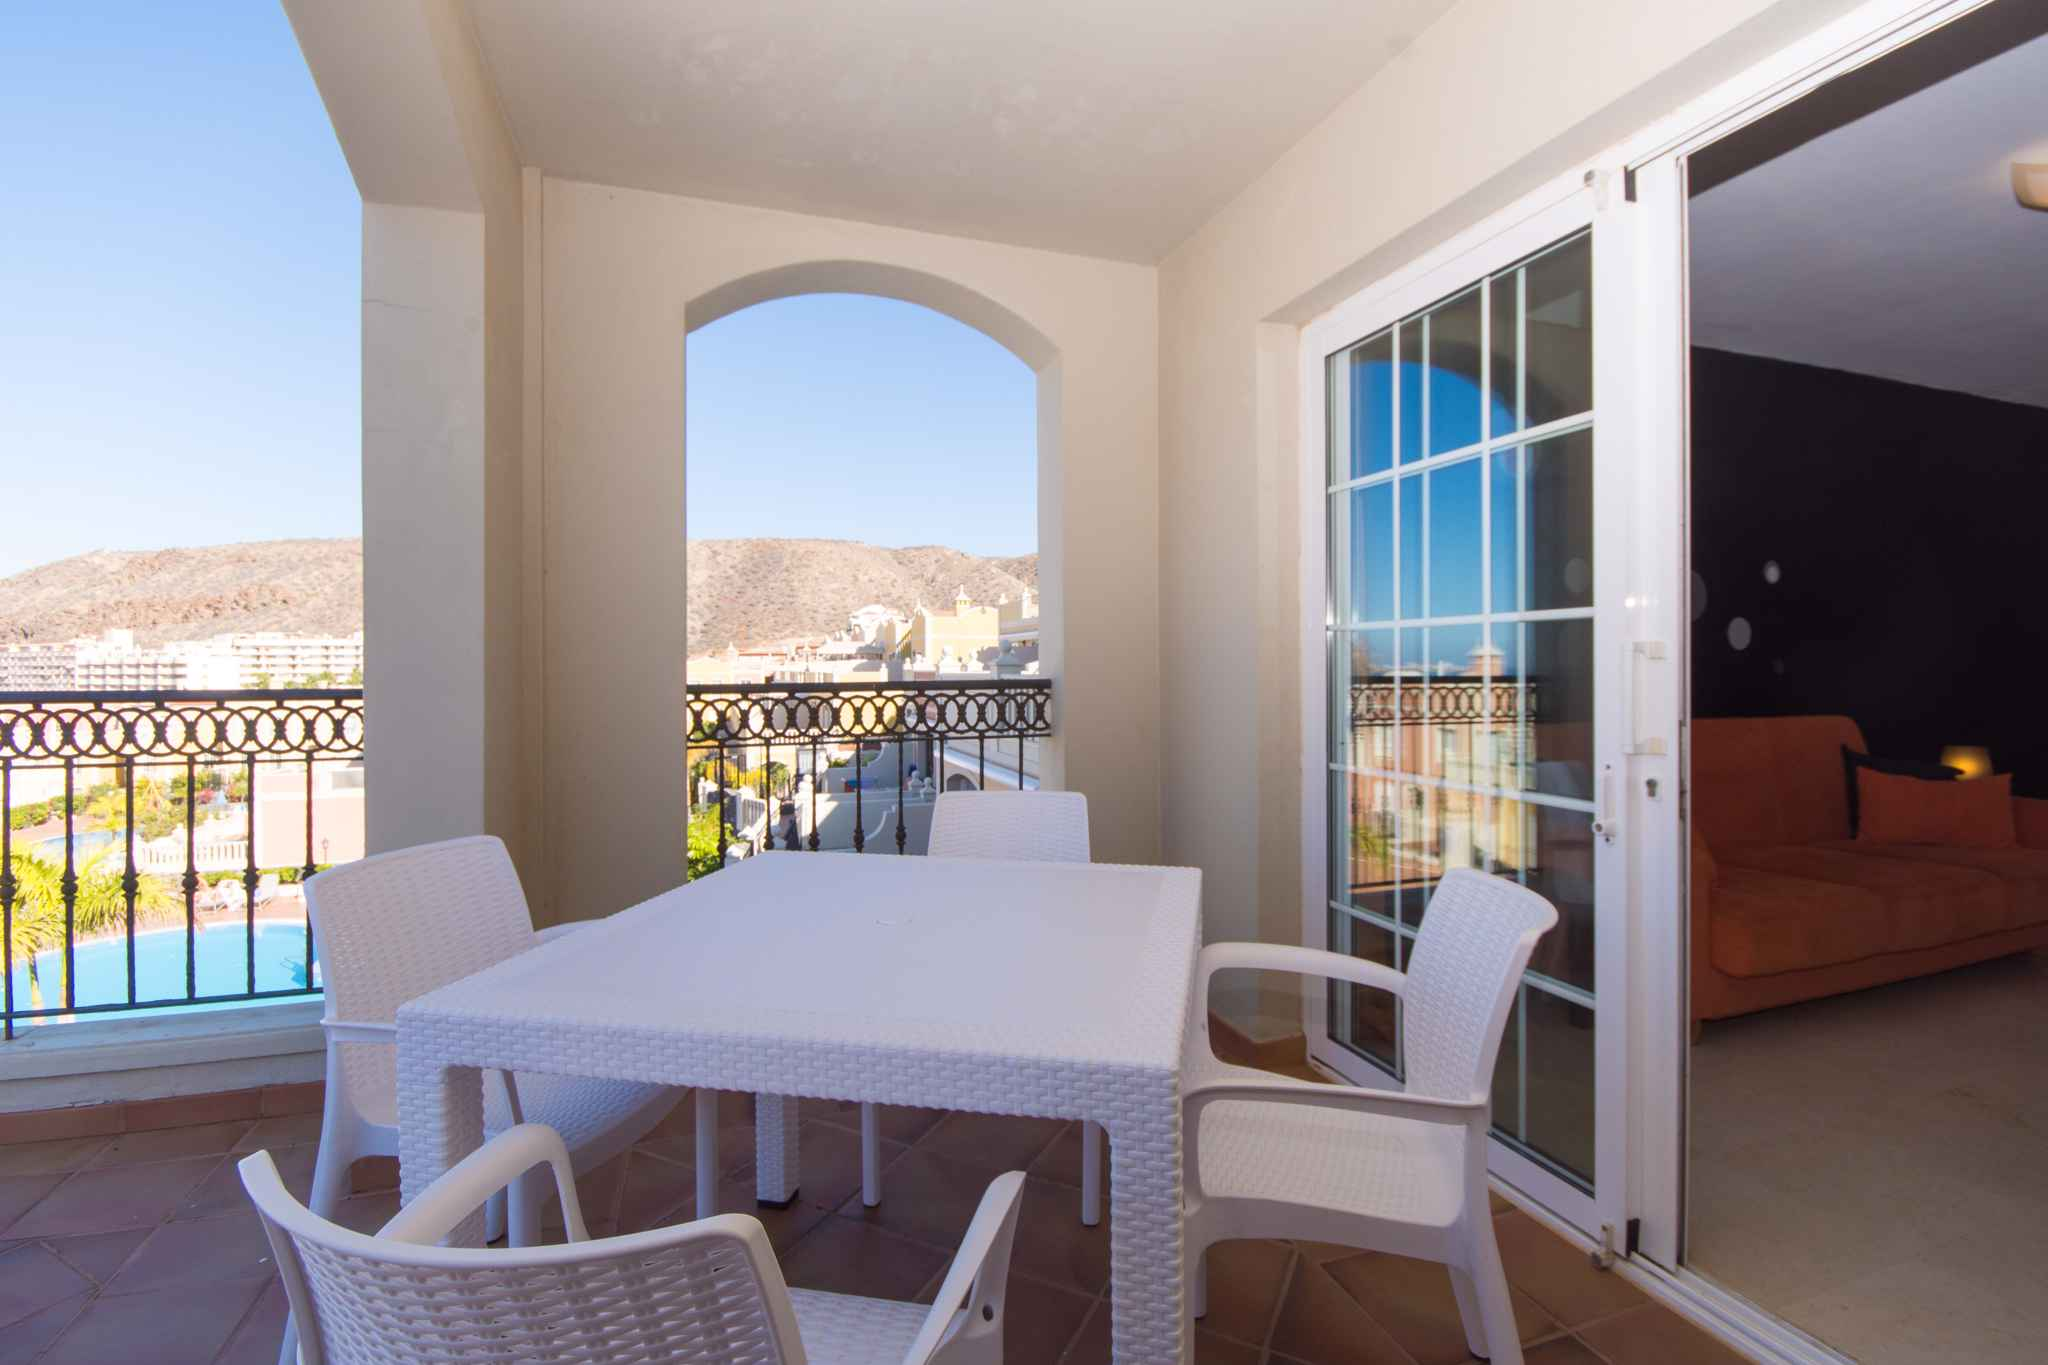 Holiday apartment mit Pool in Ferienanlage (2377552), Palm-Mar, Tenerife, Canary Islands, Spain, picture 2